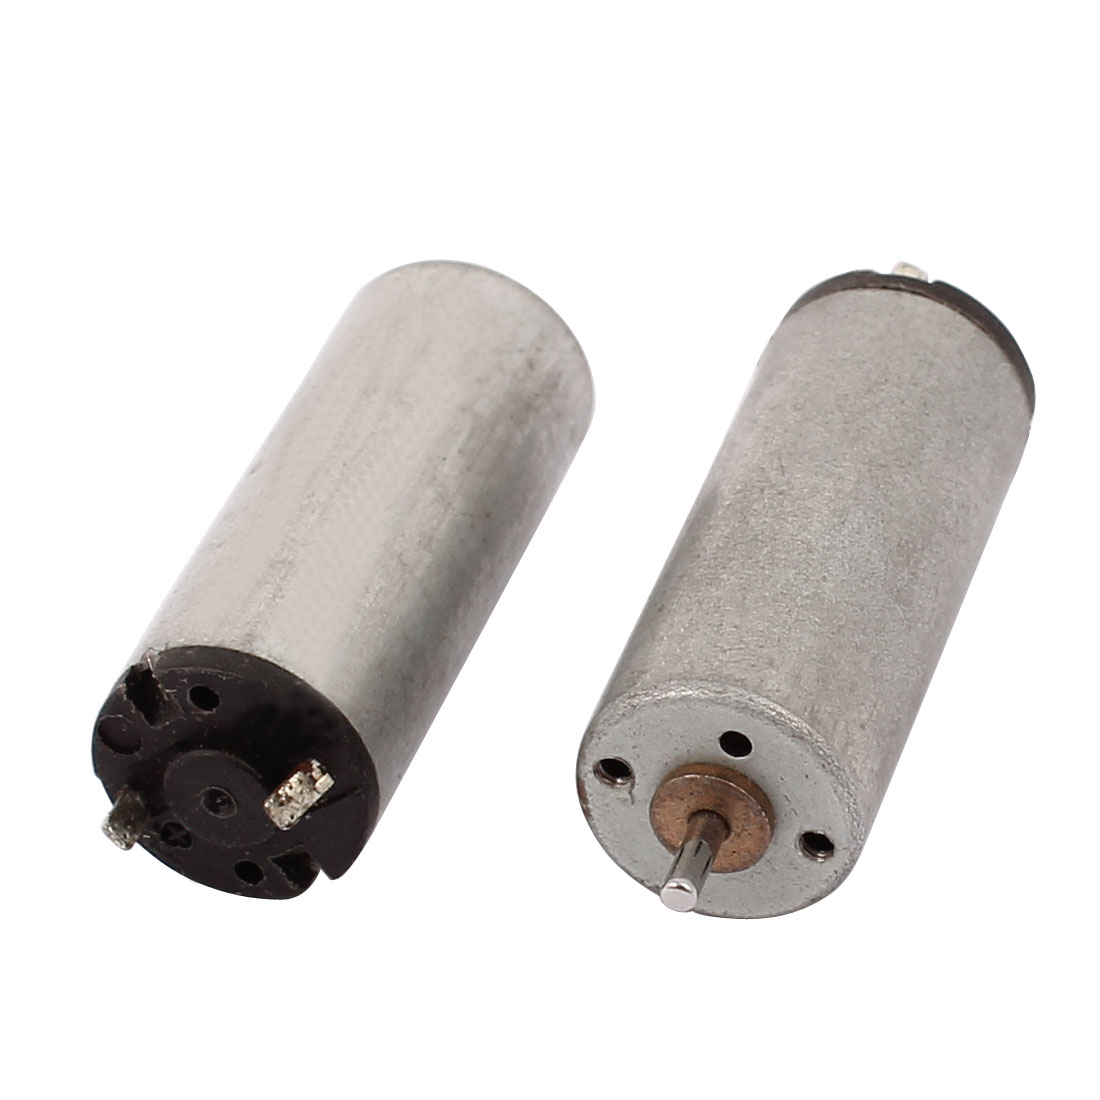 2pcs DC 3V 0.09A 14500RPM 2 Terminals Cylindrical Electric Micro Motor